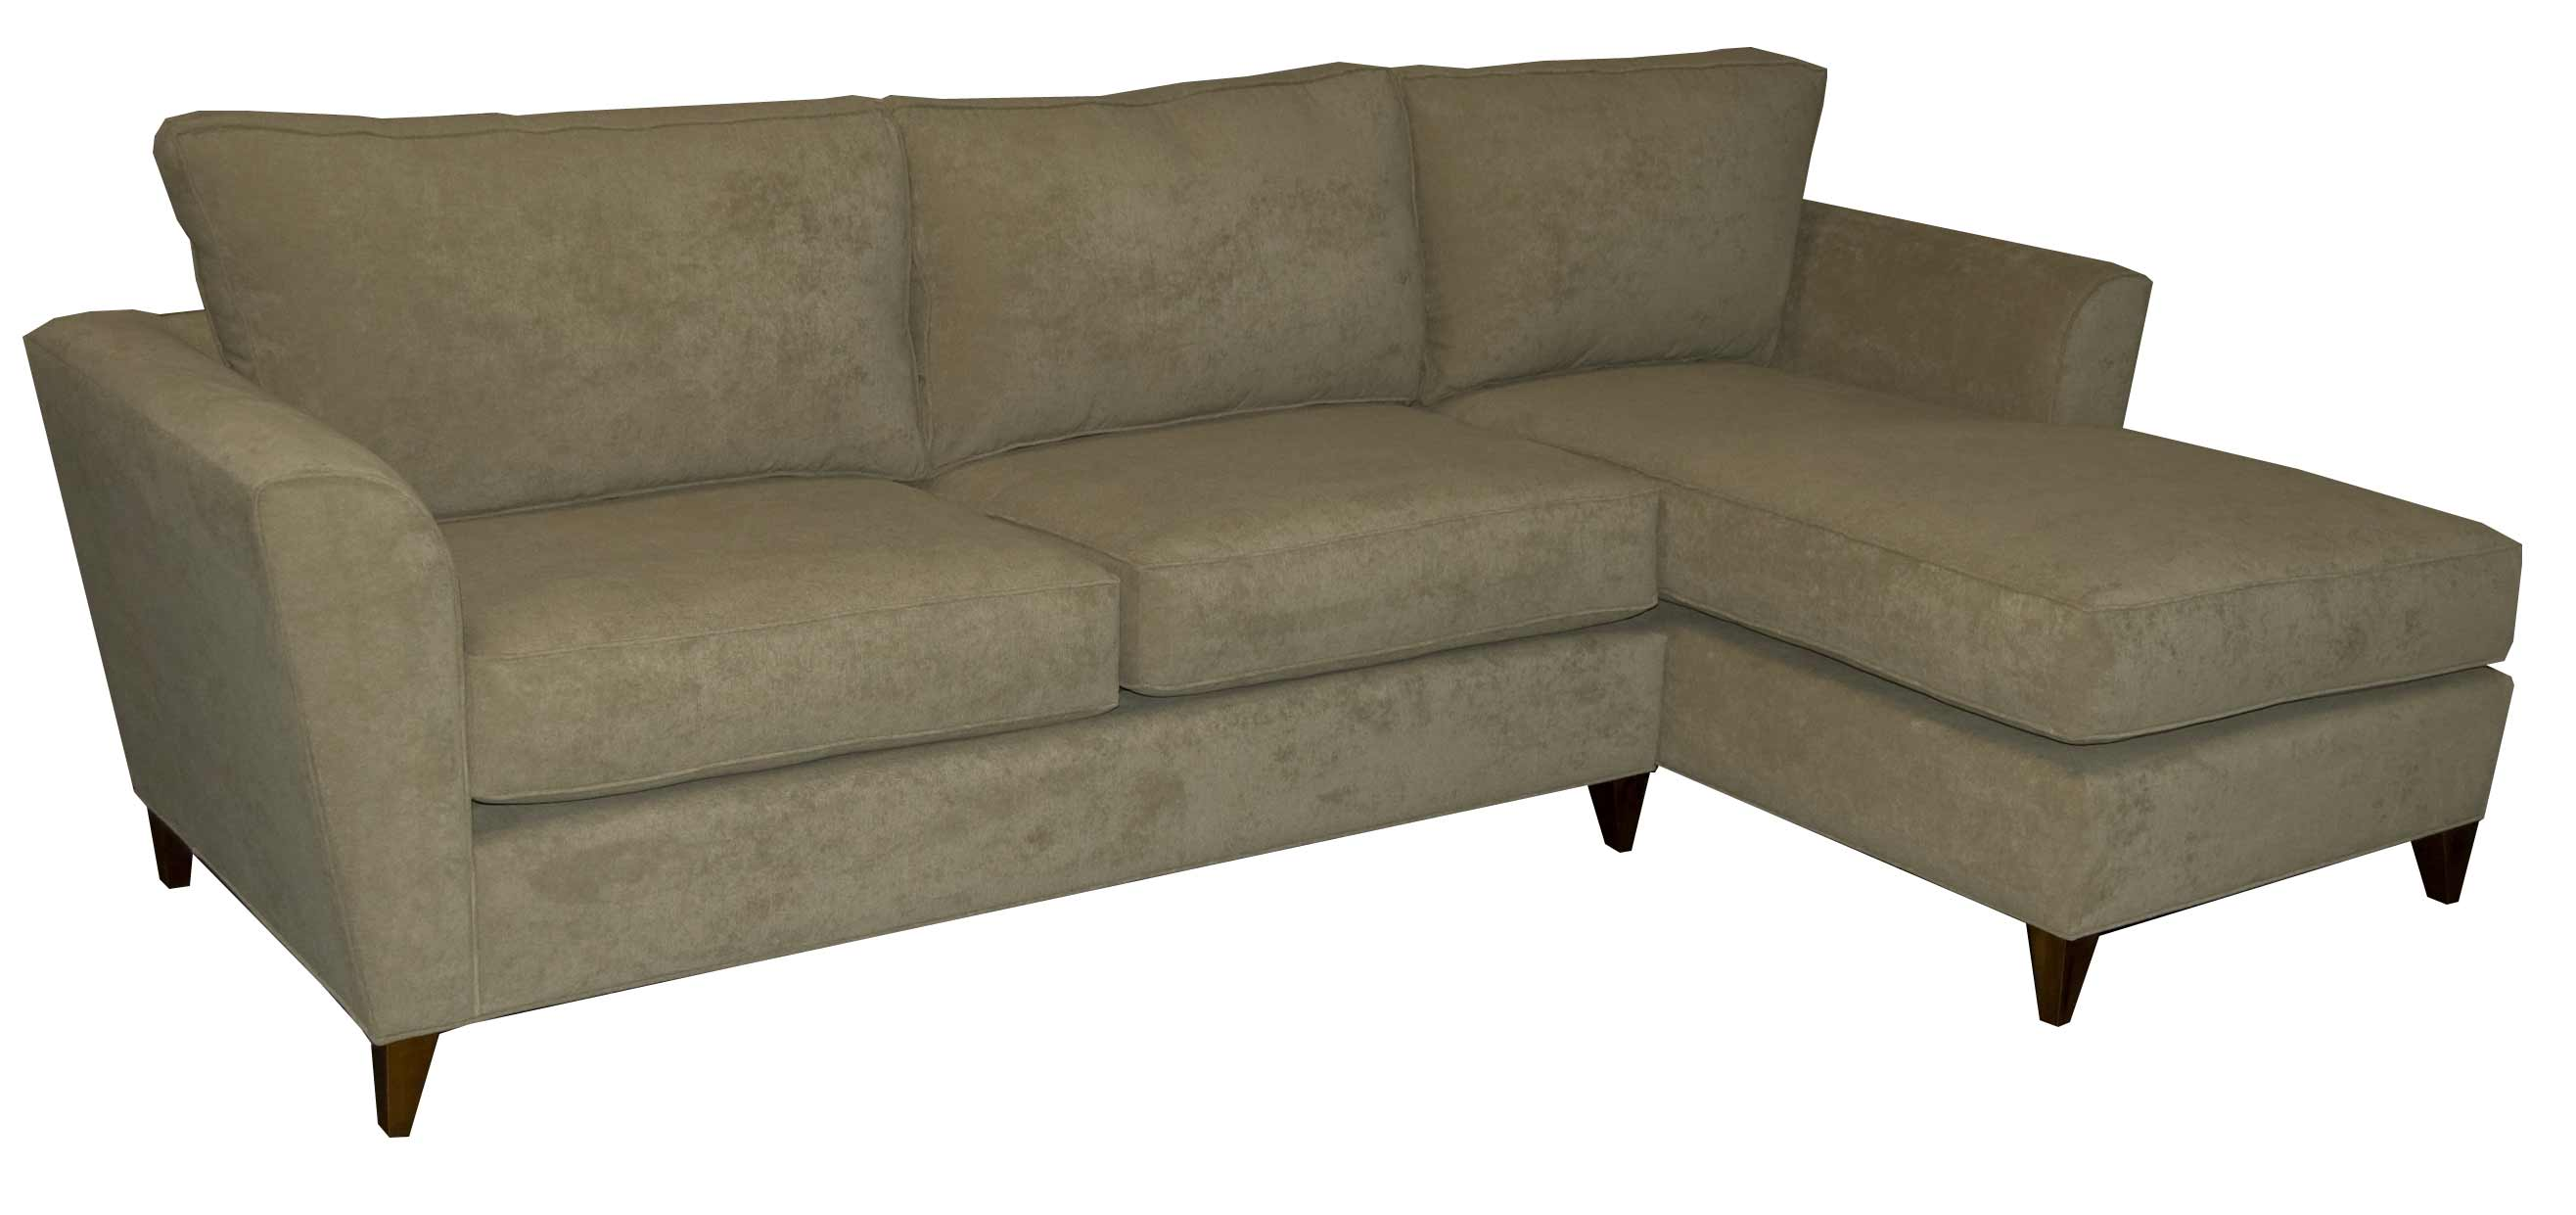 Affordable custom colby sectional couches in pale green